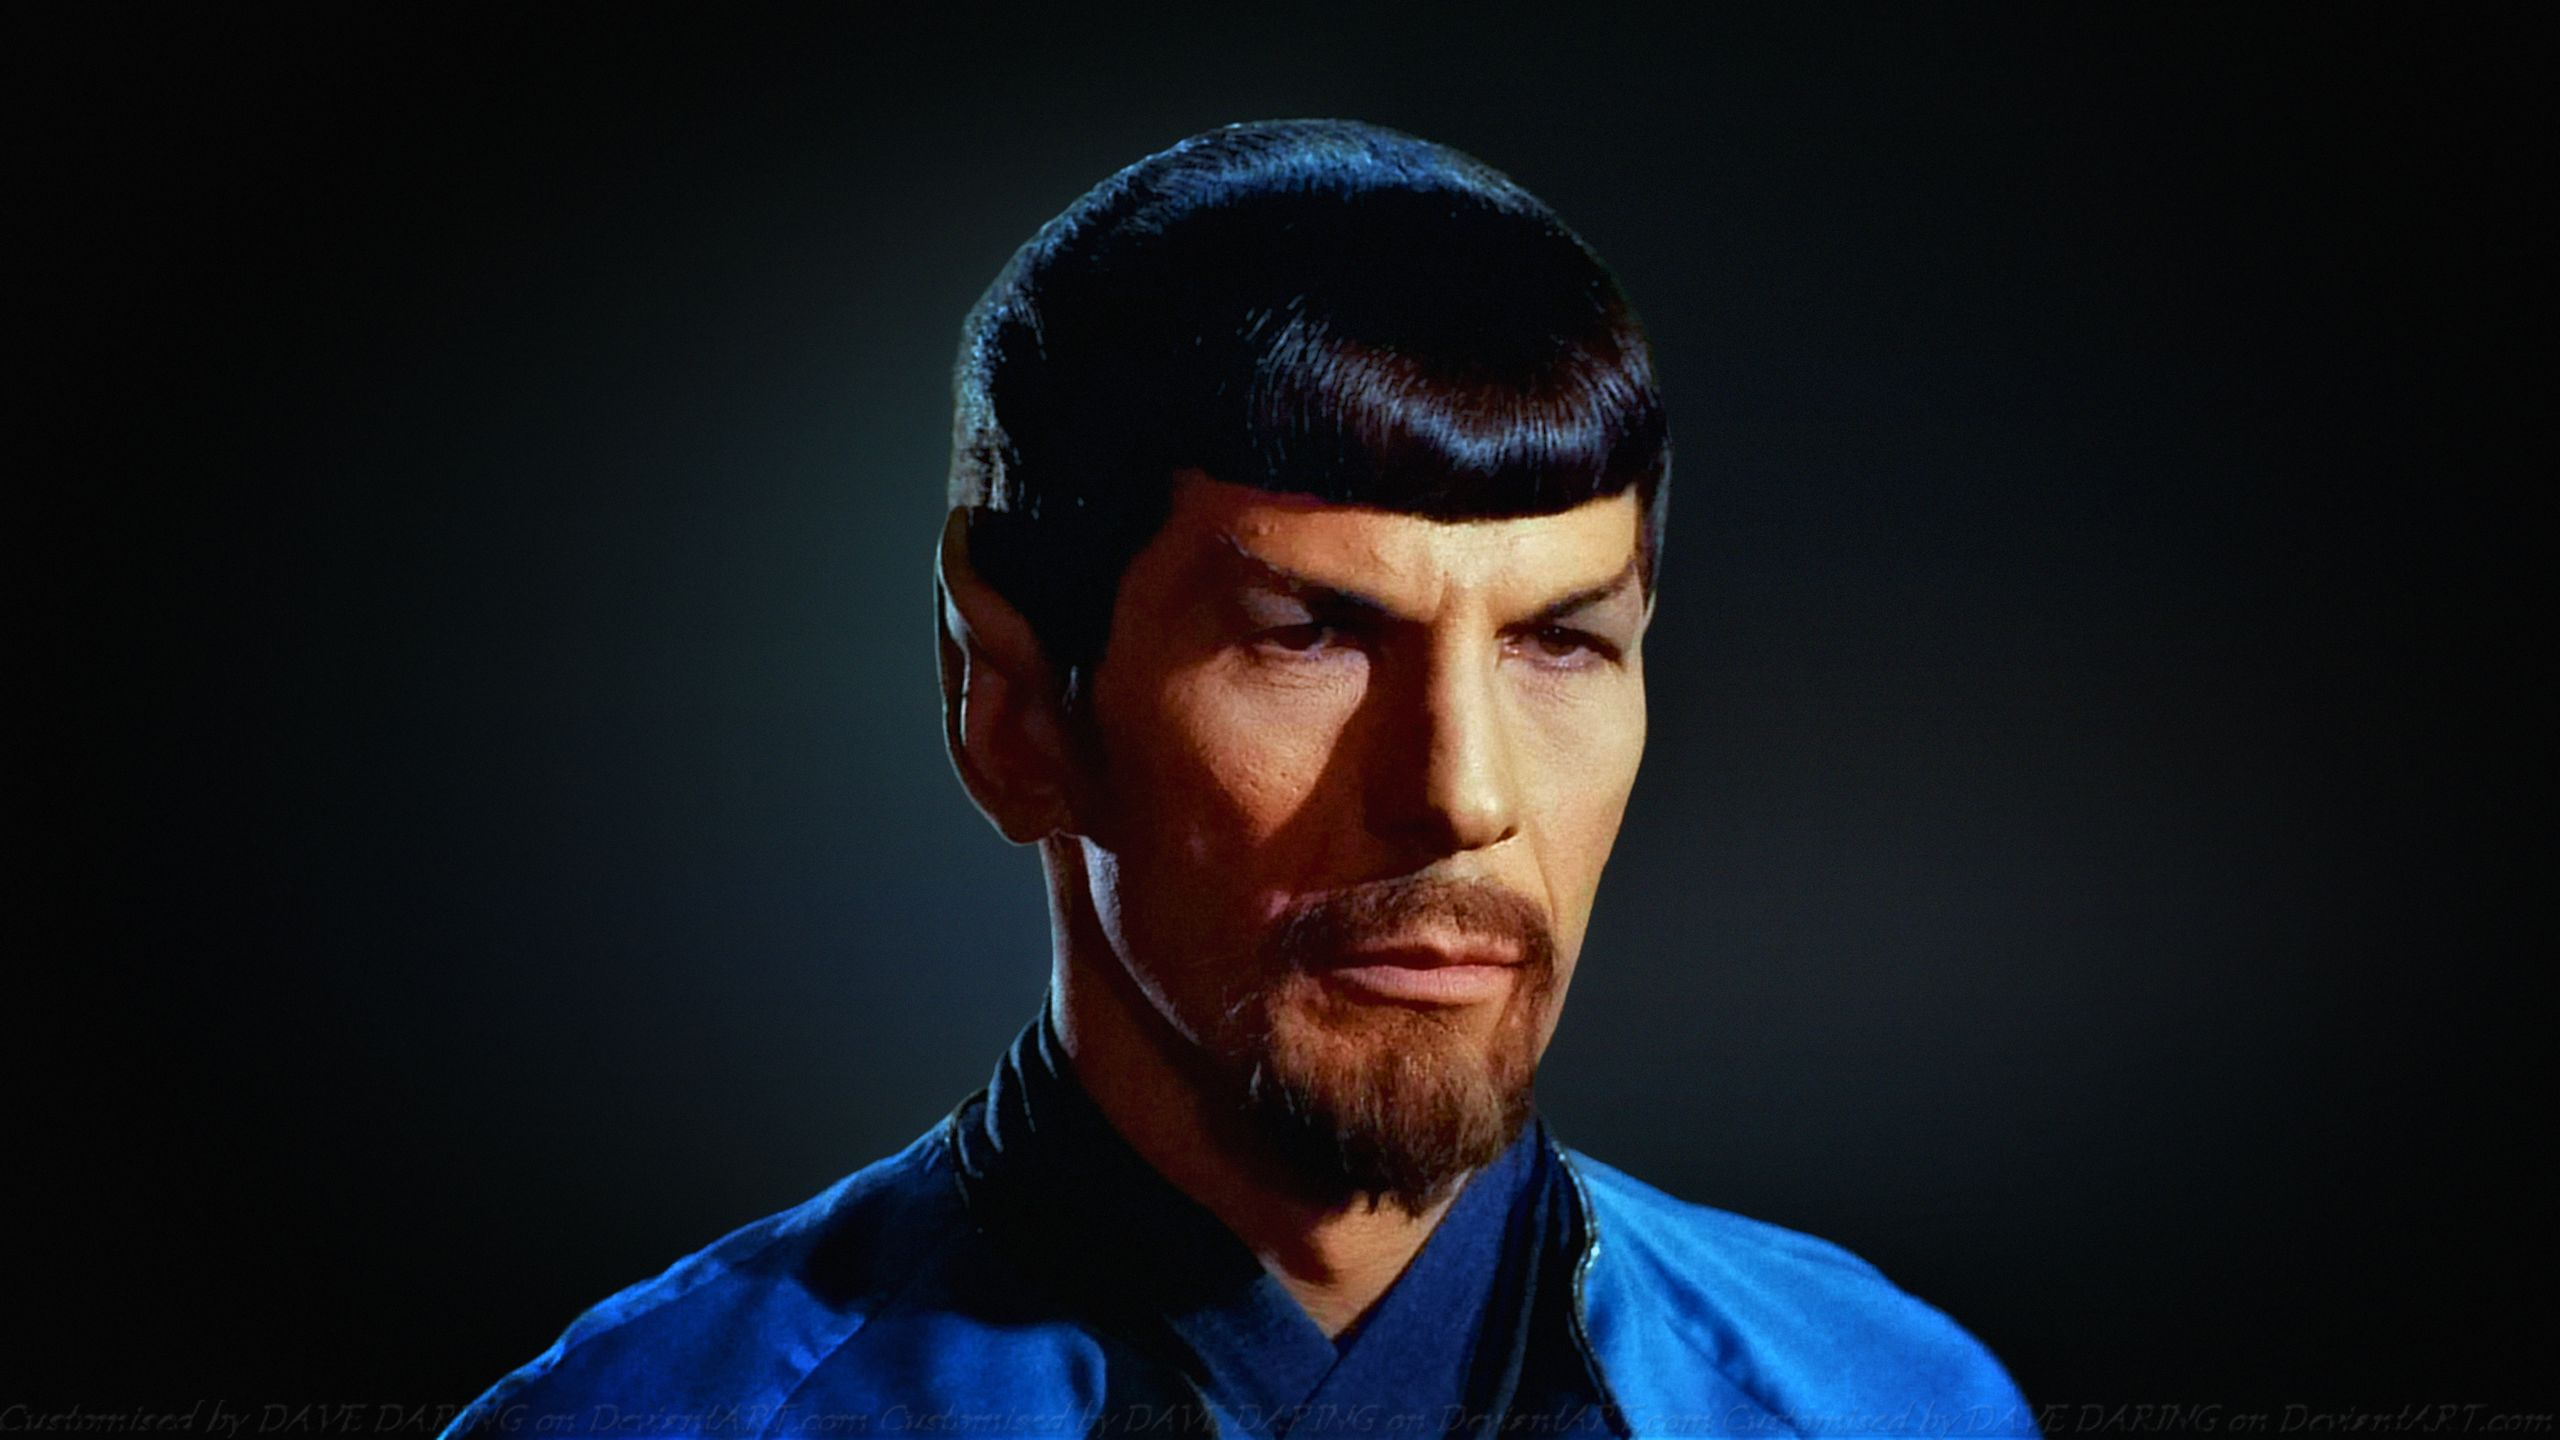 Leonard Nimoy Quotes Leonard Nimoy Versus Spock Can You Tell Which Quotes Are From His